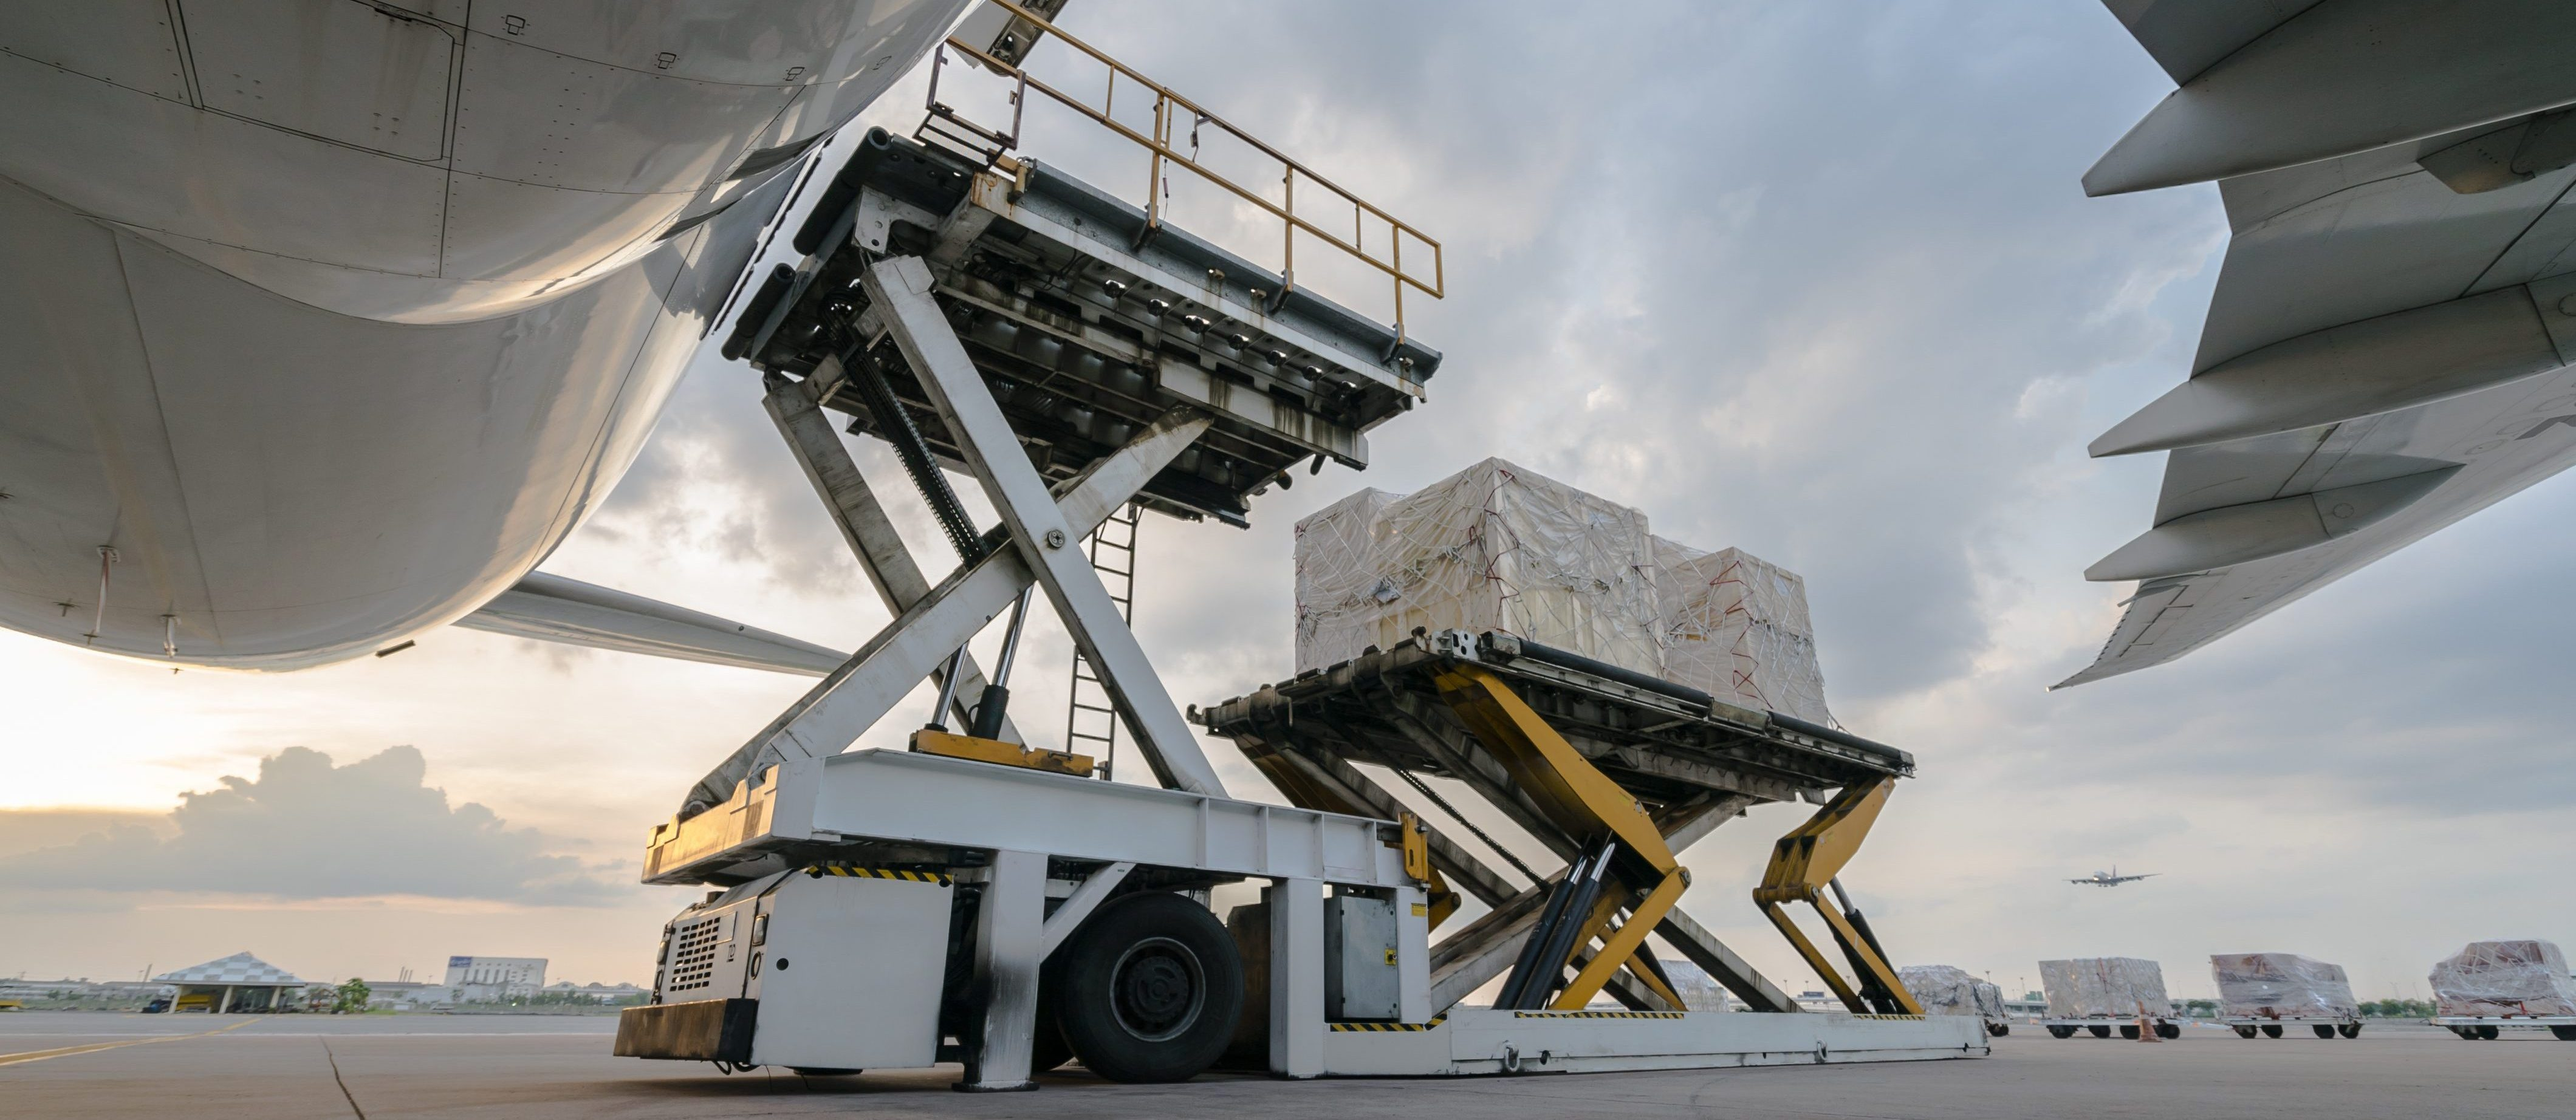 Loading cargo to the airplane